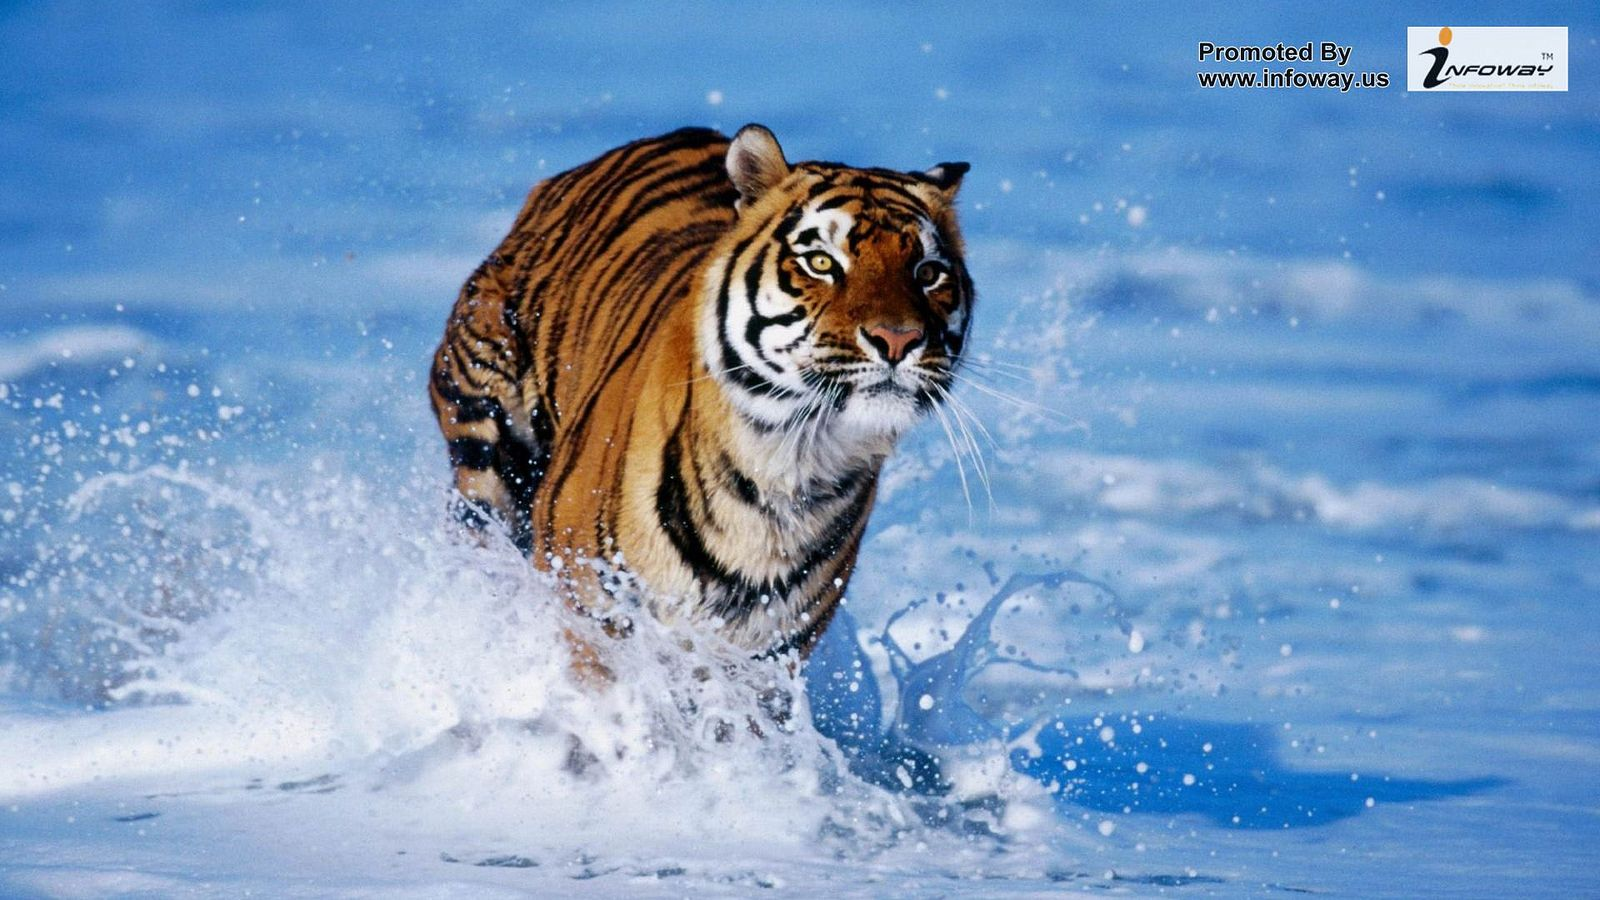 Wild Tiger Beach Hd Wallpapers For Pc Animal Wallpaper Tiger Images